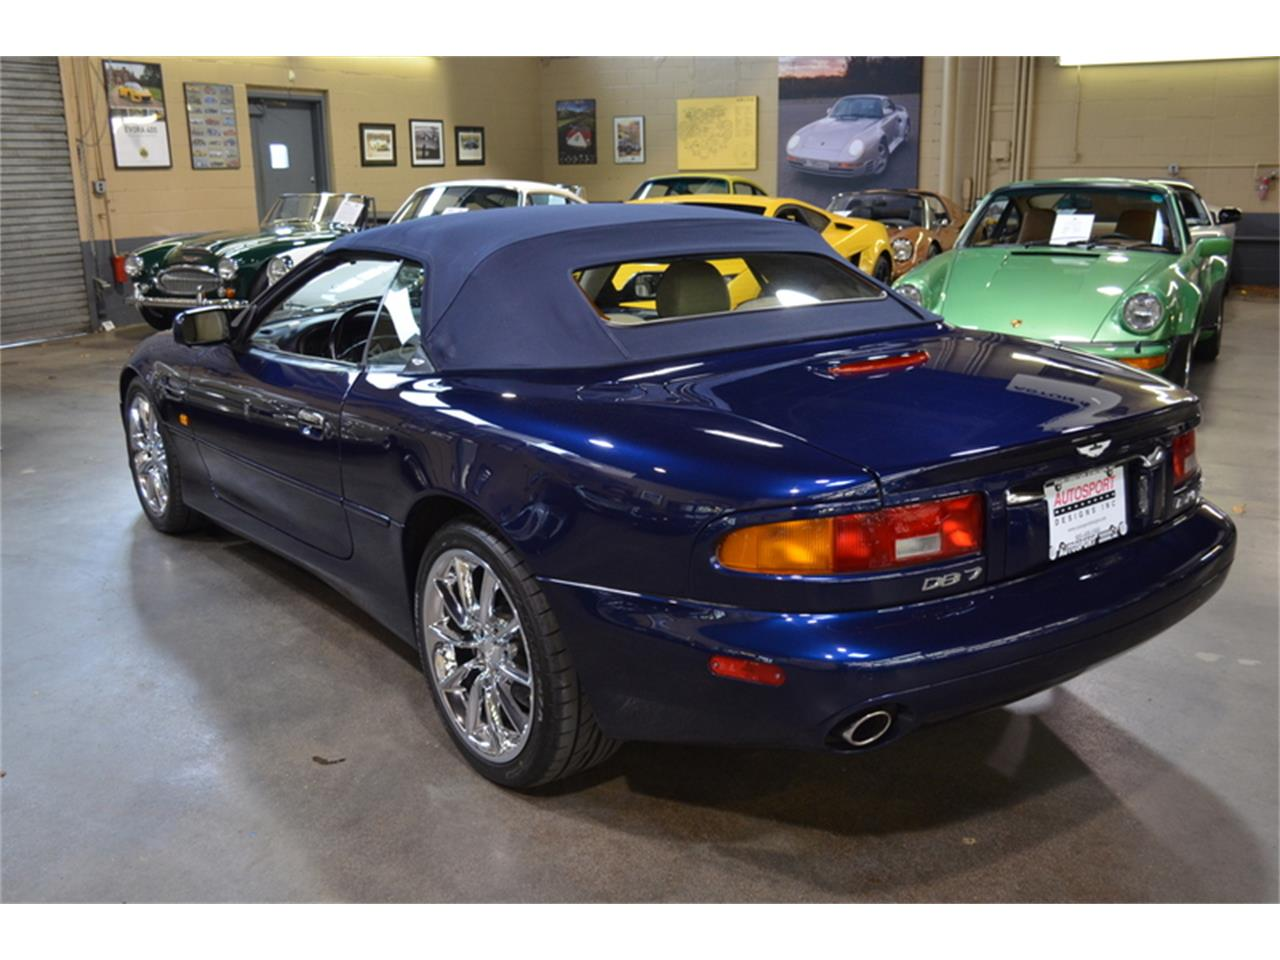 Large Picture of '02 Aston Martin DB7 Vantage Volante - $39,500.00 - MBES